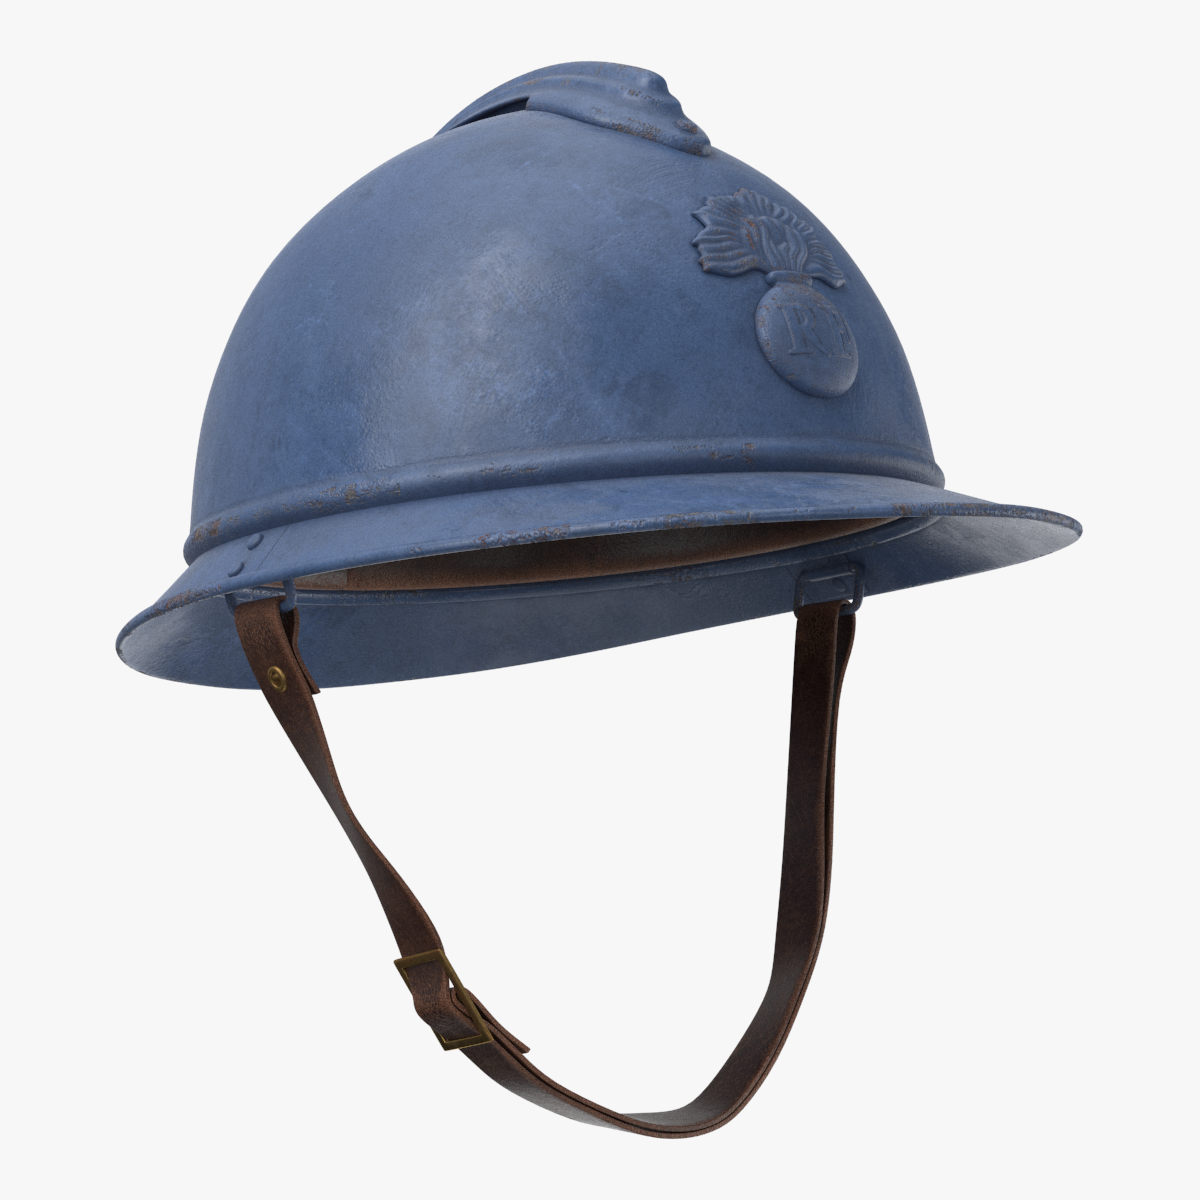 3d French M15 Adrian Helmet Armor French M15 Wwi World War Steel Army Soldier Battle People France Blue Paint Pbr Army Helmet Helmet Armor Helmet